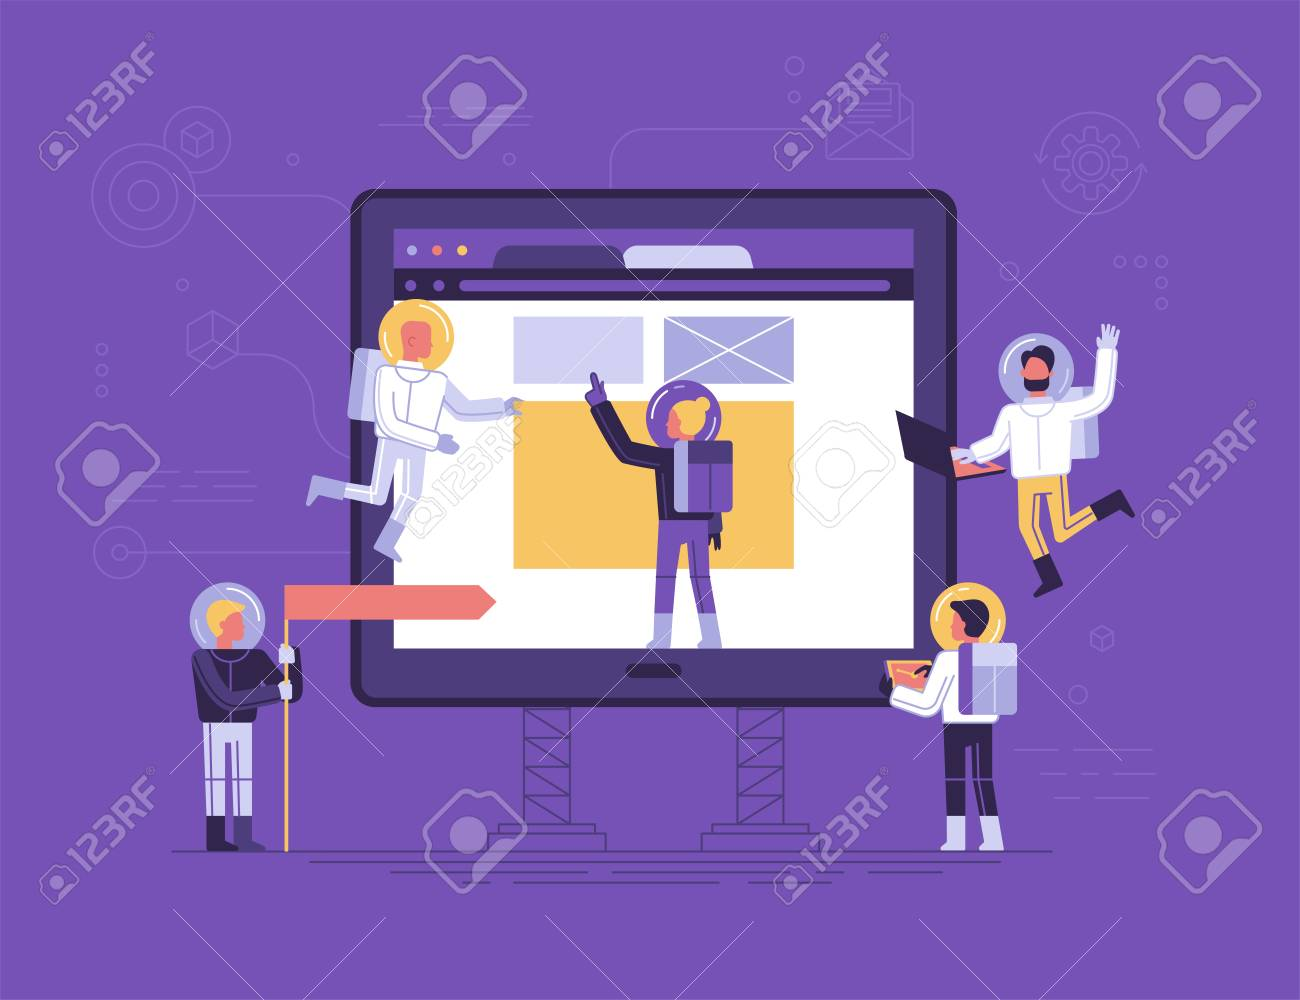 Flat linear style app development concept vector illustration, small people astronauts in space suits building code and design for mobile phone, start up metaphor. - 97612530